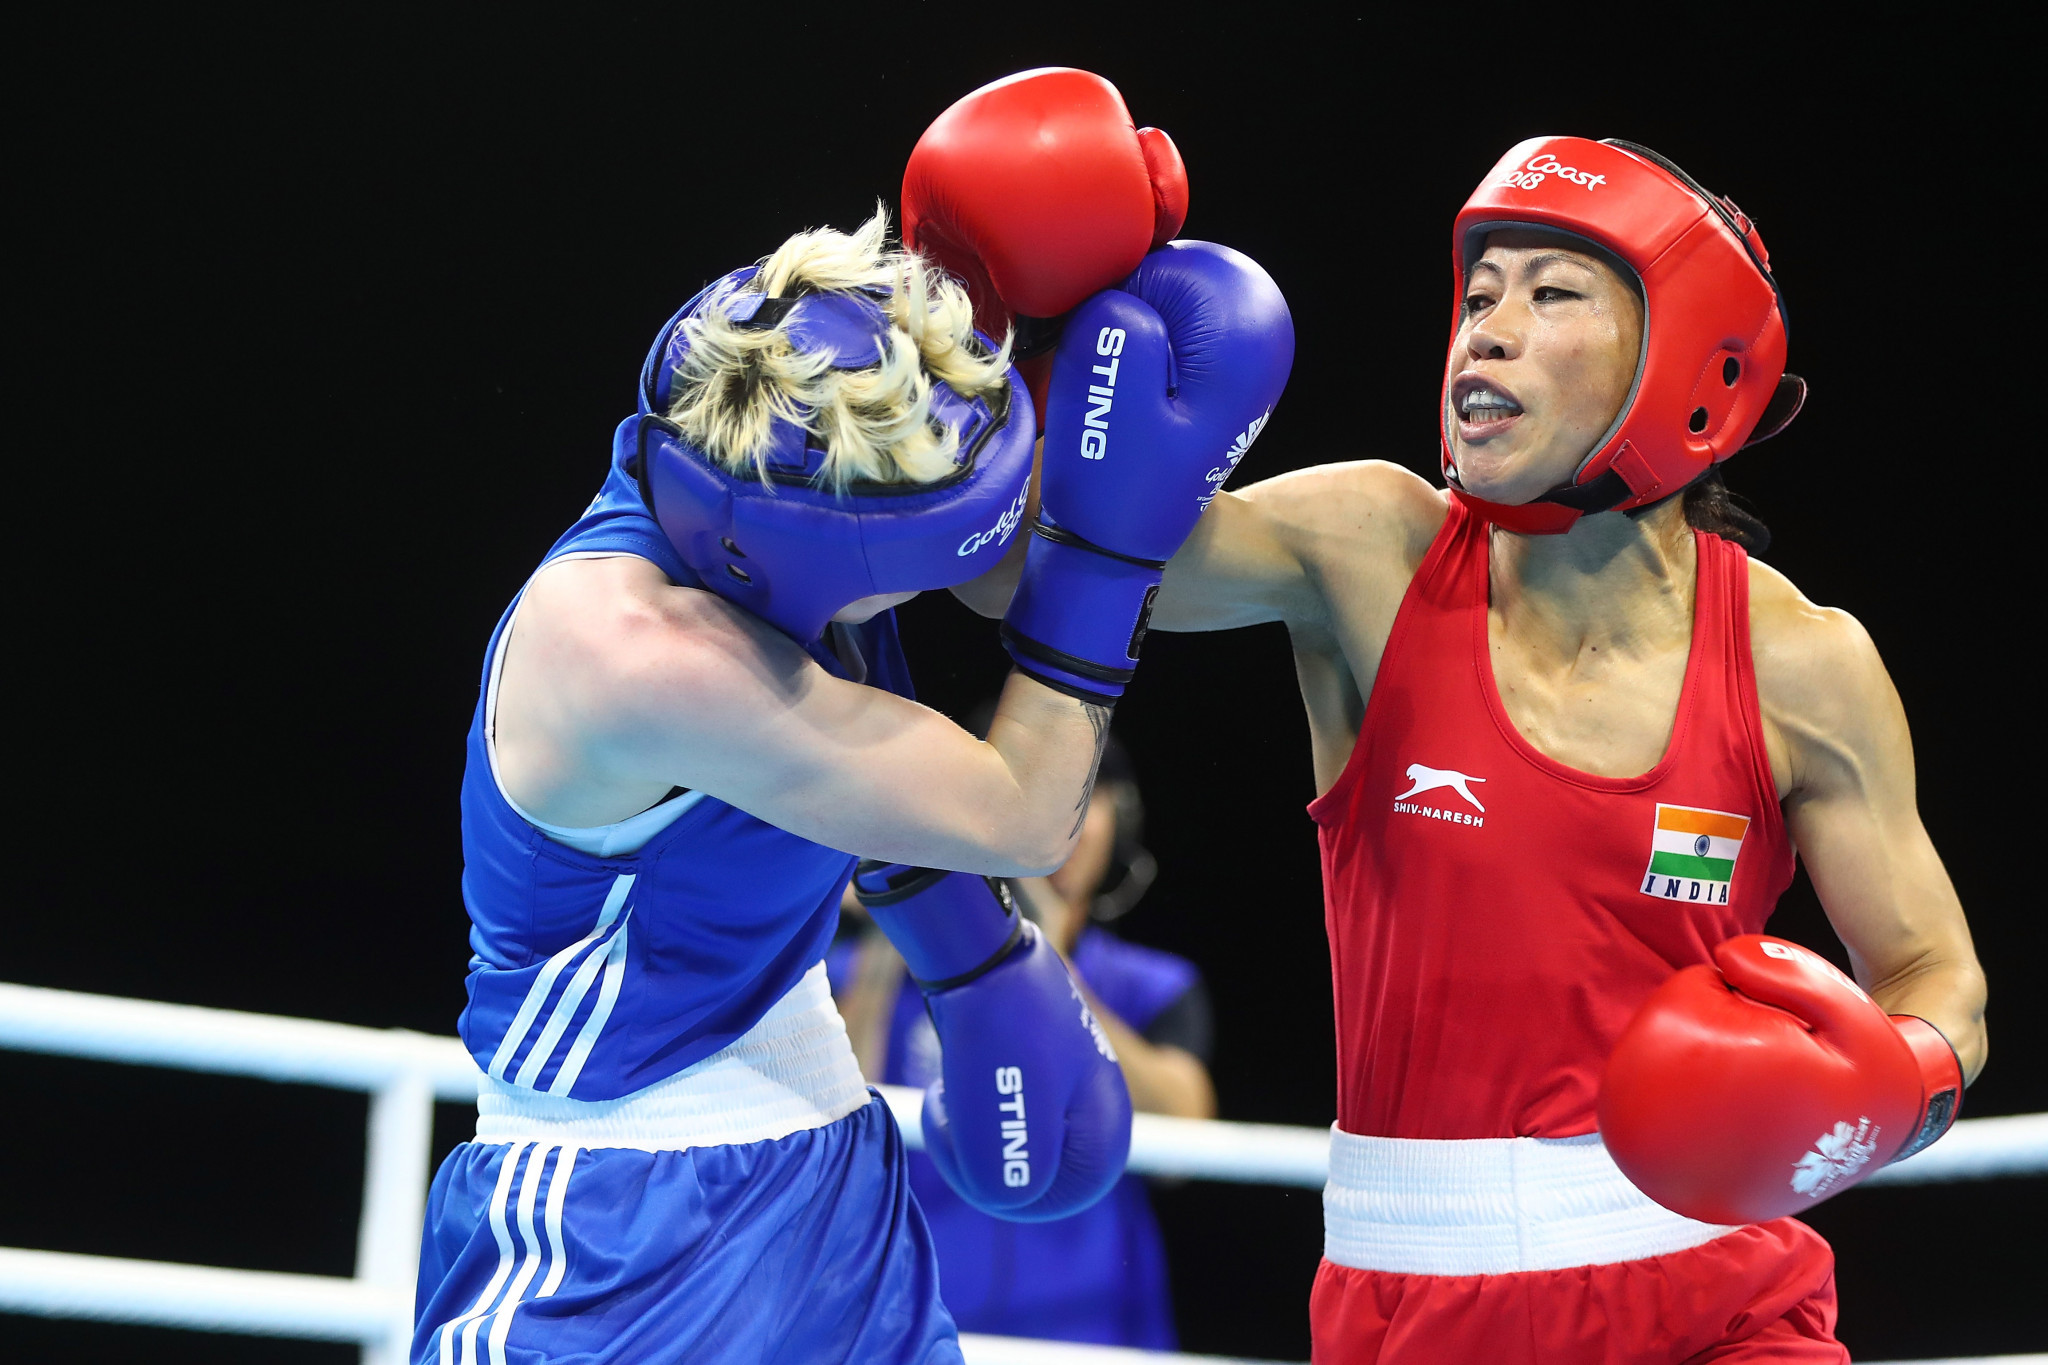 Mary Kom will be aiming to claim her sixth gold medal at the Asian Championships in Dubai ©Getty Images